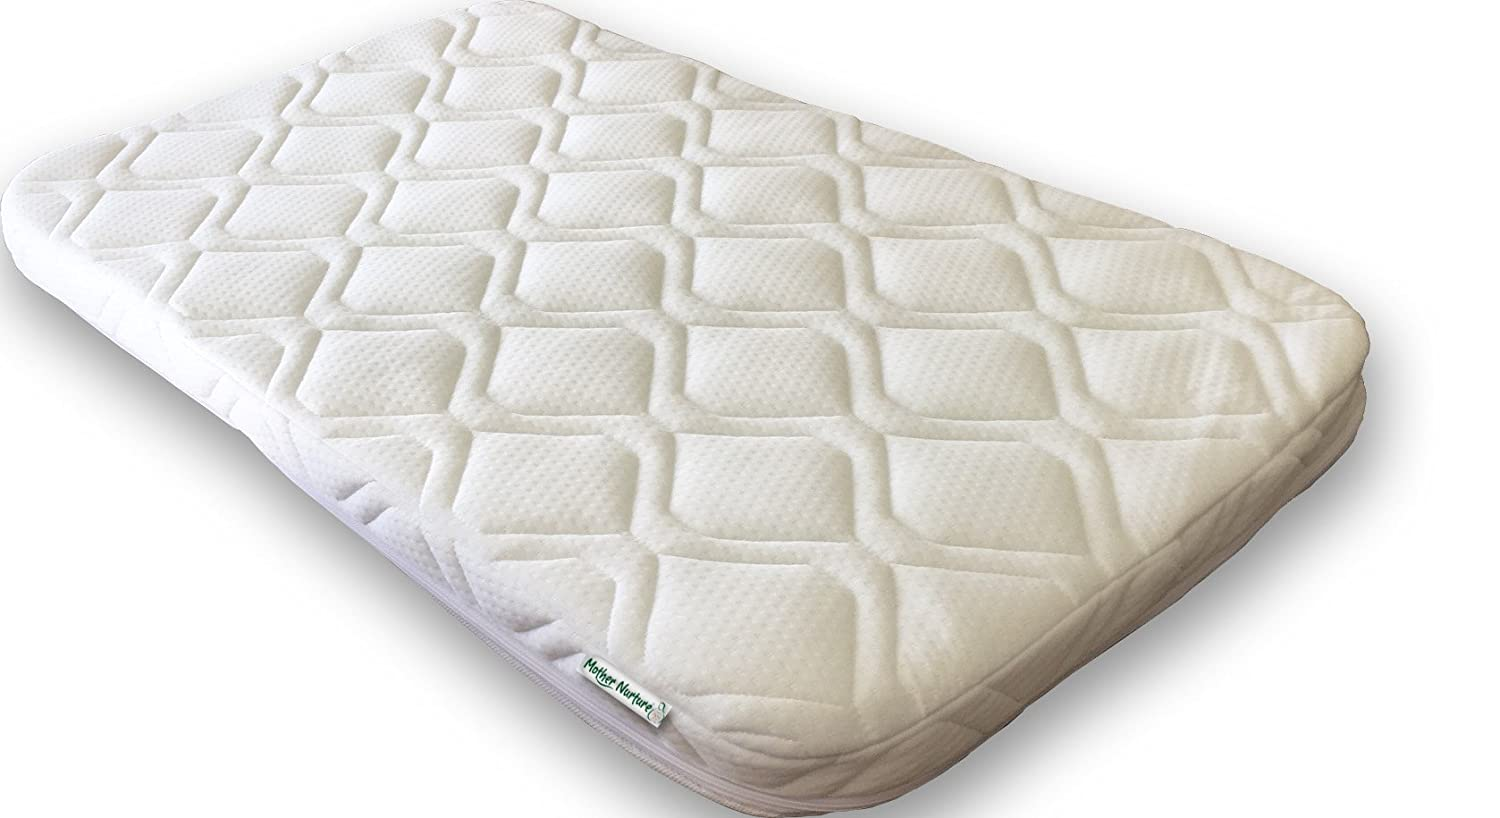 Mother Nurture Thermo Bedside Crib Mattress 84x50x5cm (Fits Chicco Next 2 Me) MN040